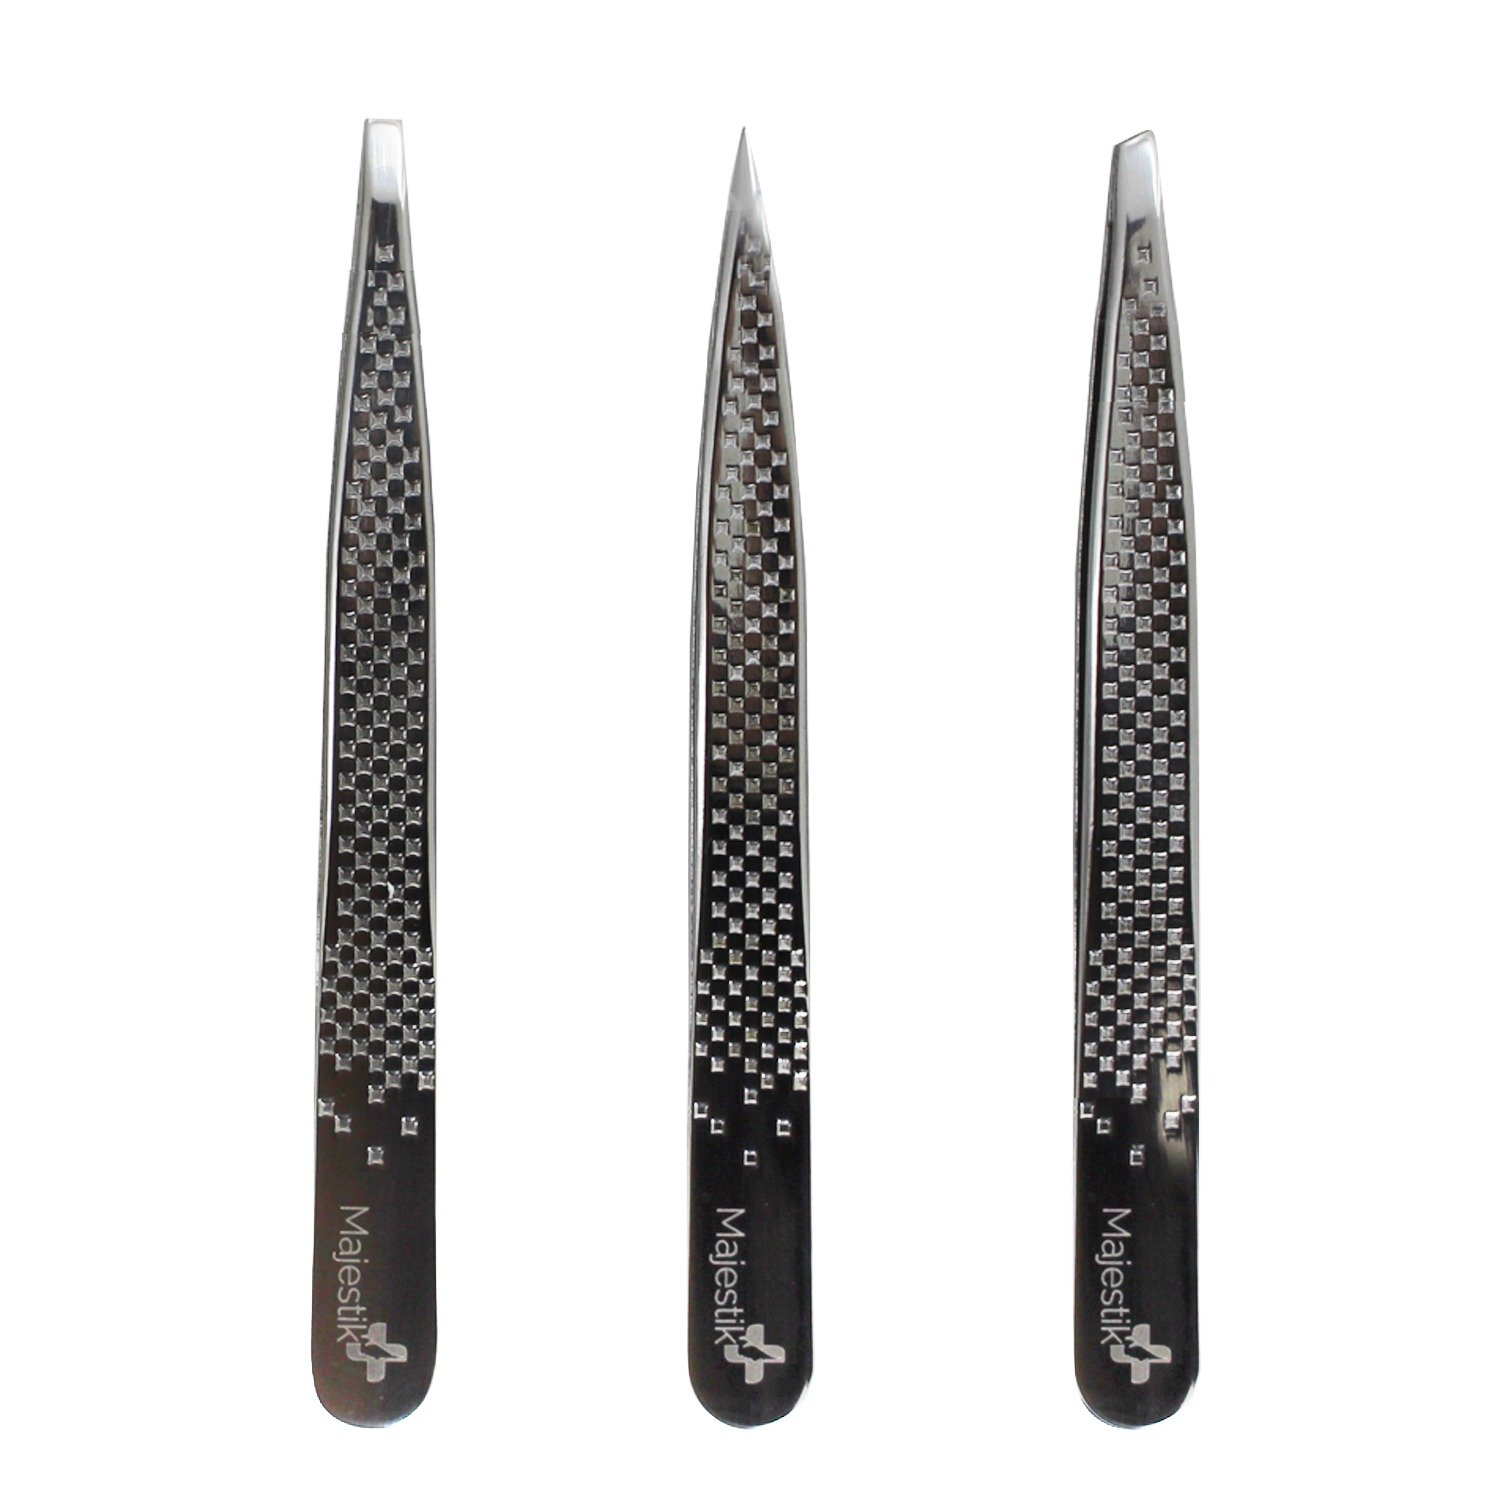 Majestik+ Tweezers Set- 3 Piece Stainless Steel Tweezers Set with Leather Case – Slant, Straight and Pointed Tip Tweezers – Best Use for Eyebrow, Ingrown and Nose Hair, Splinters & More JLS Personal Care Ltd. TS-03